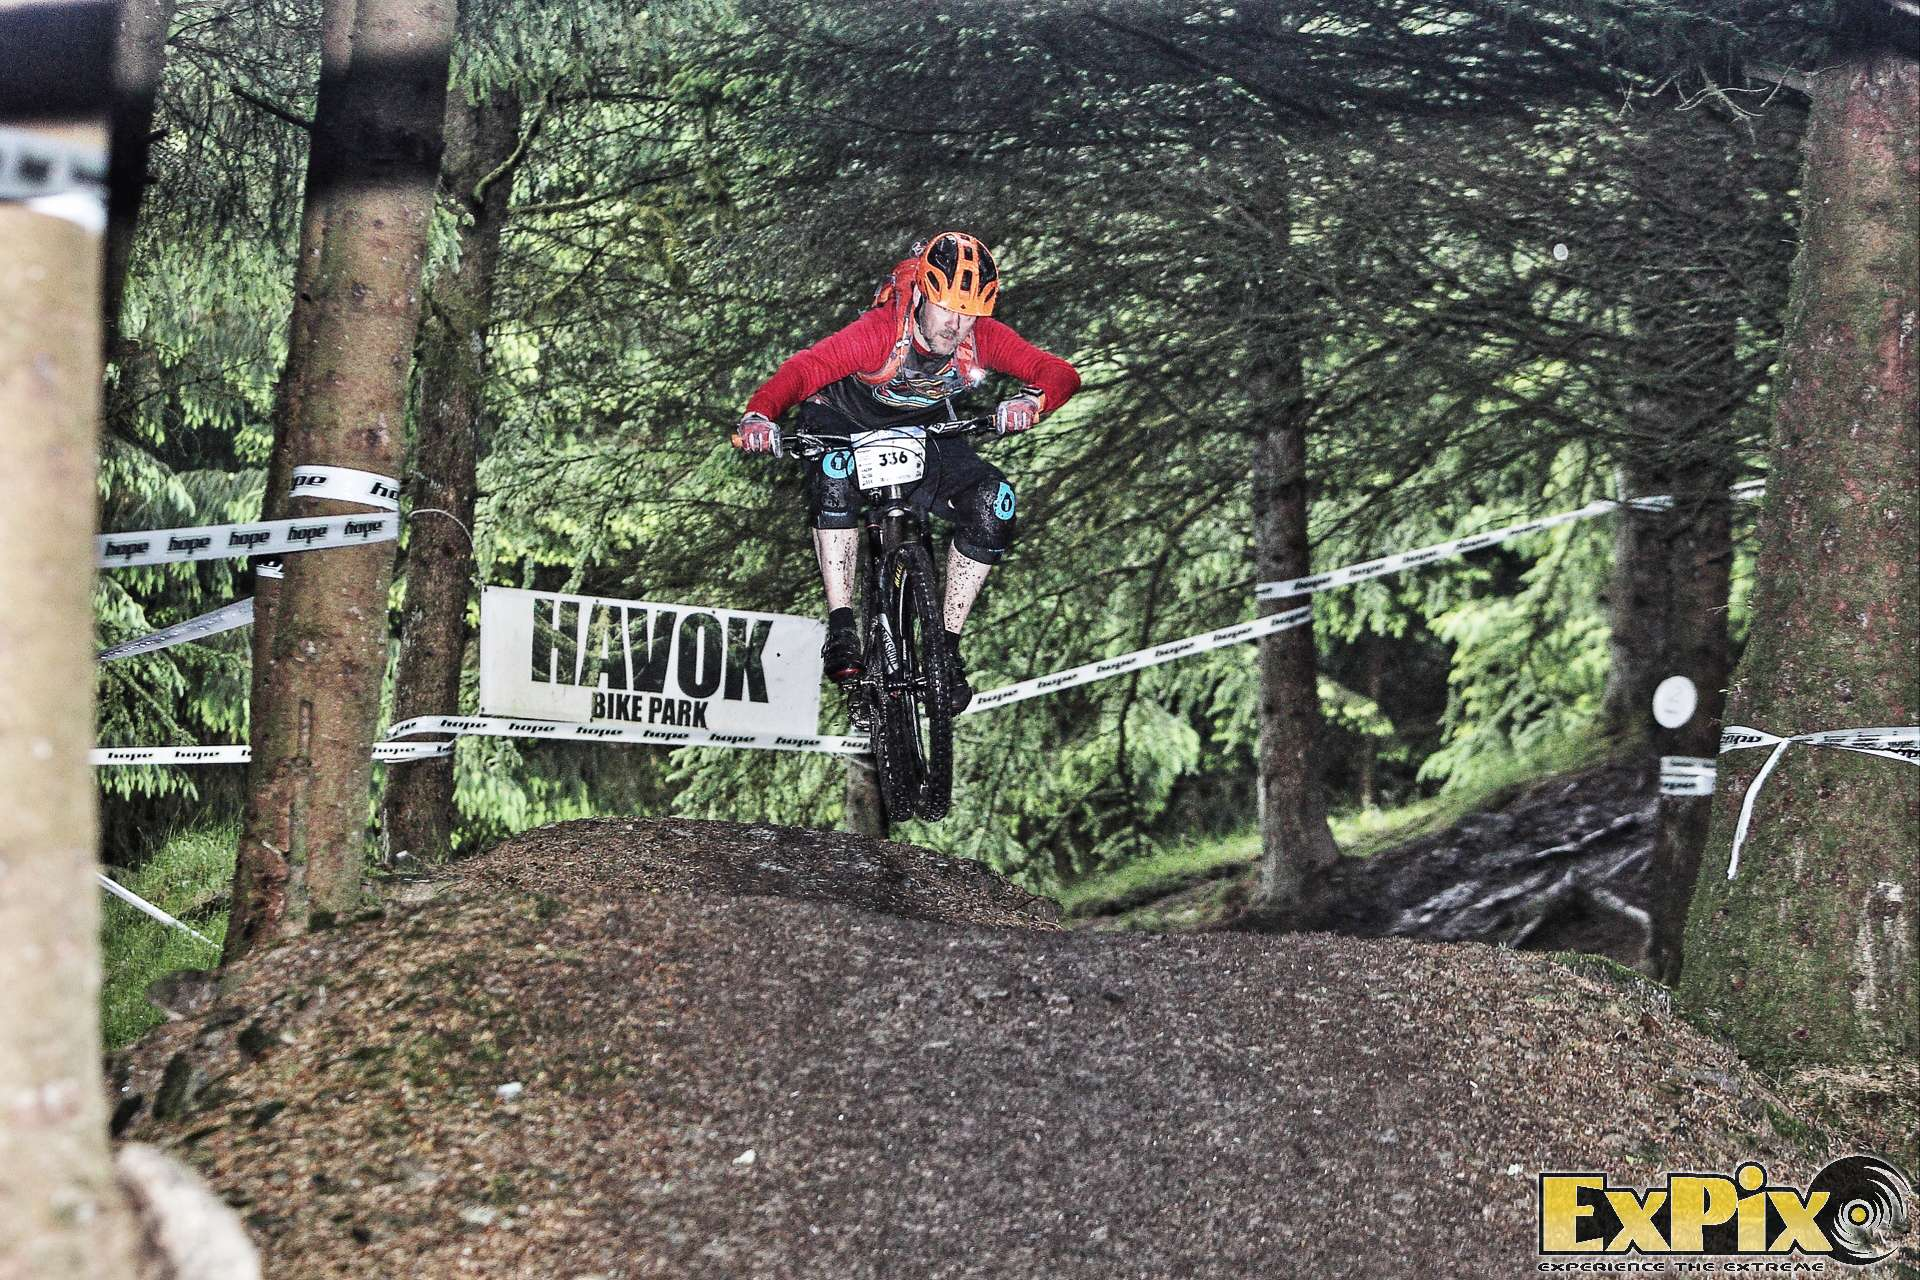 Havok Bike Park hosted the PMBA Hope Enduro 2017